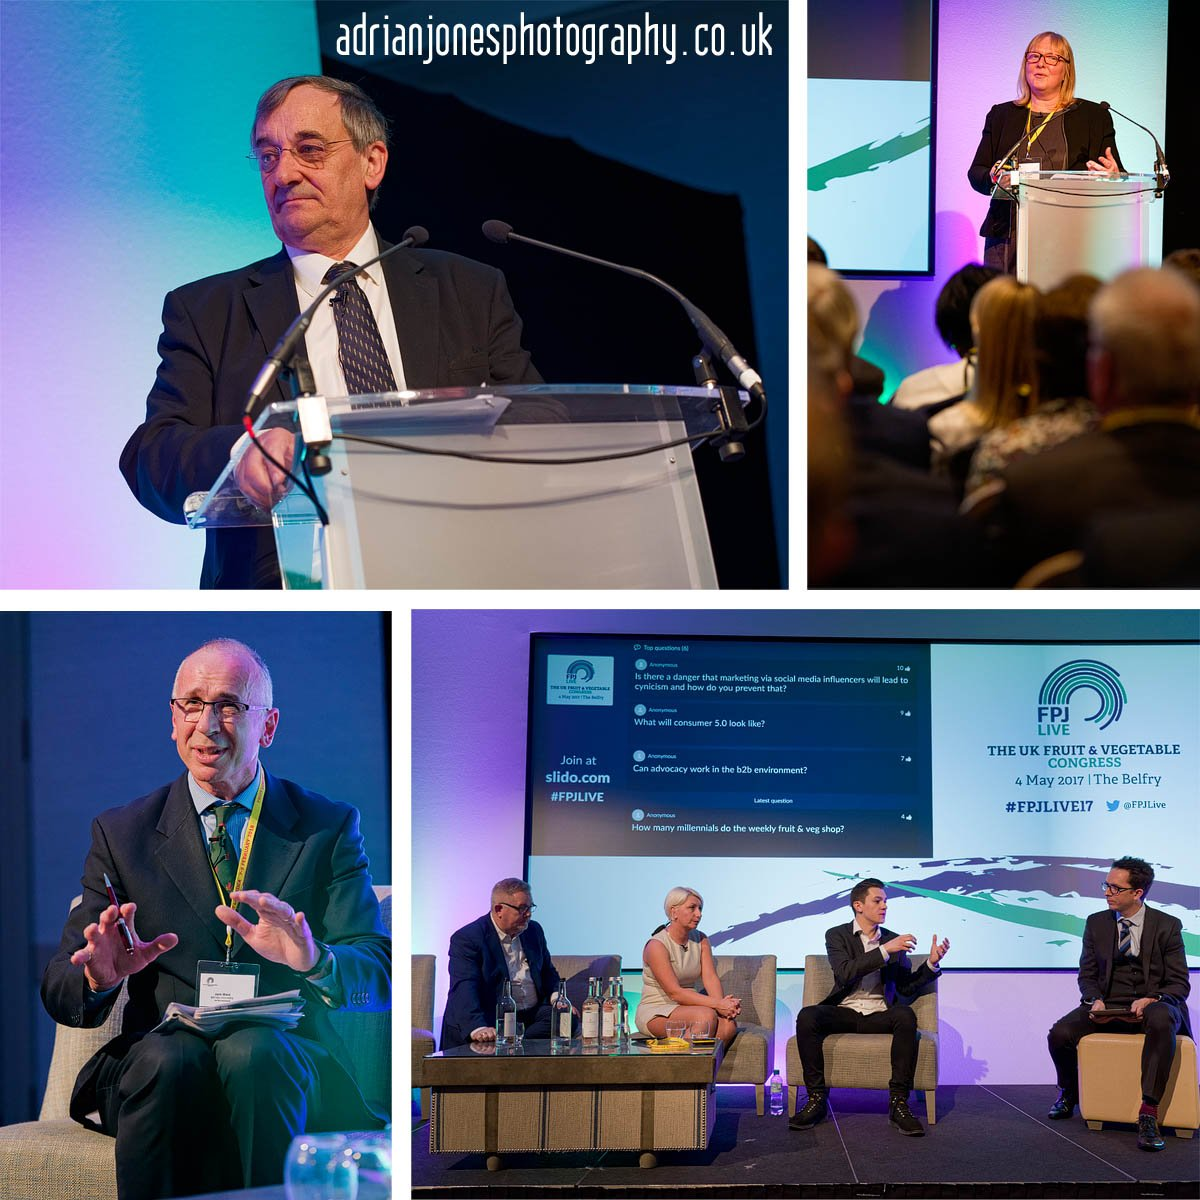 The-Belfry-Conference-Event-Photographer-Birmingham-Midlands-1